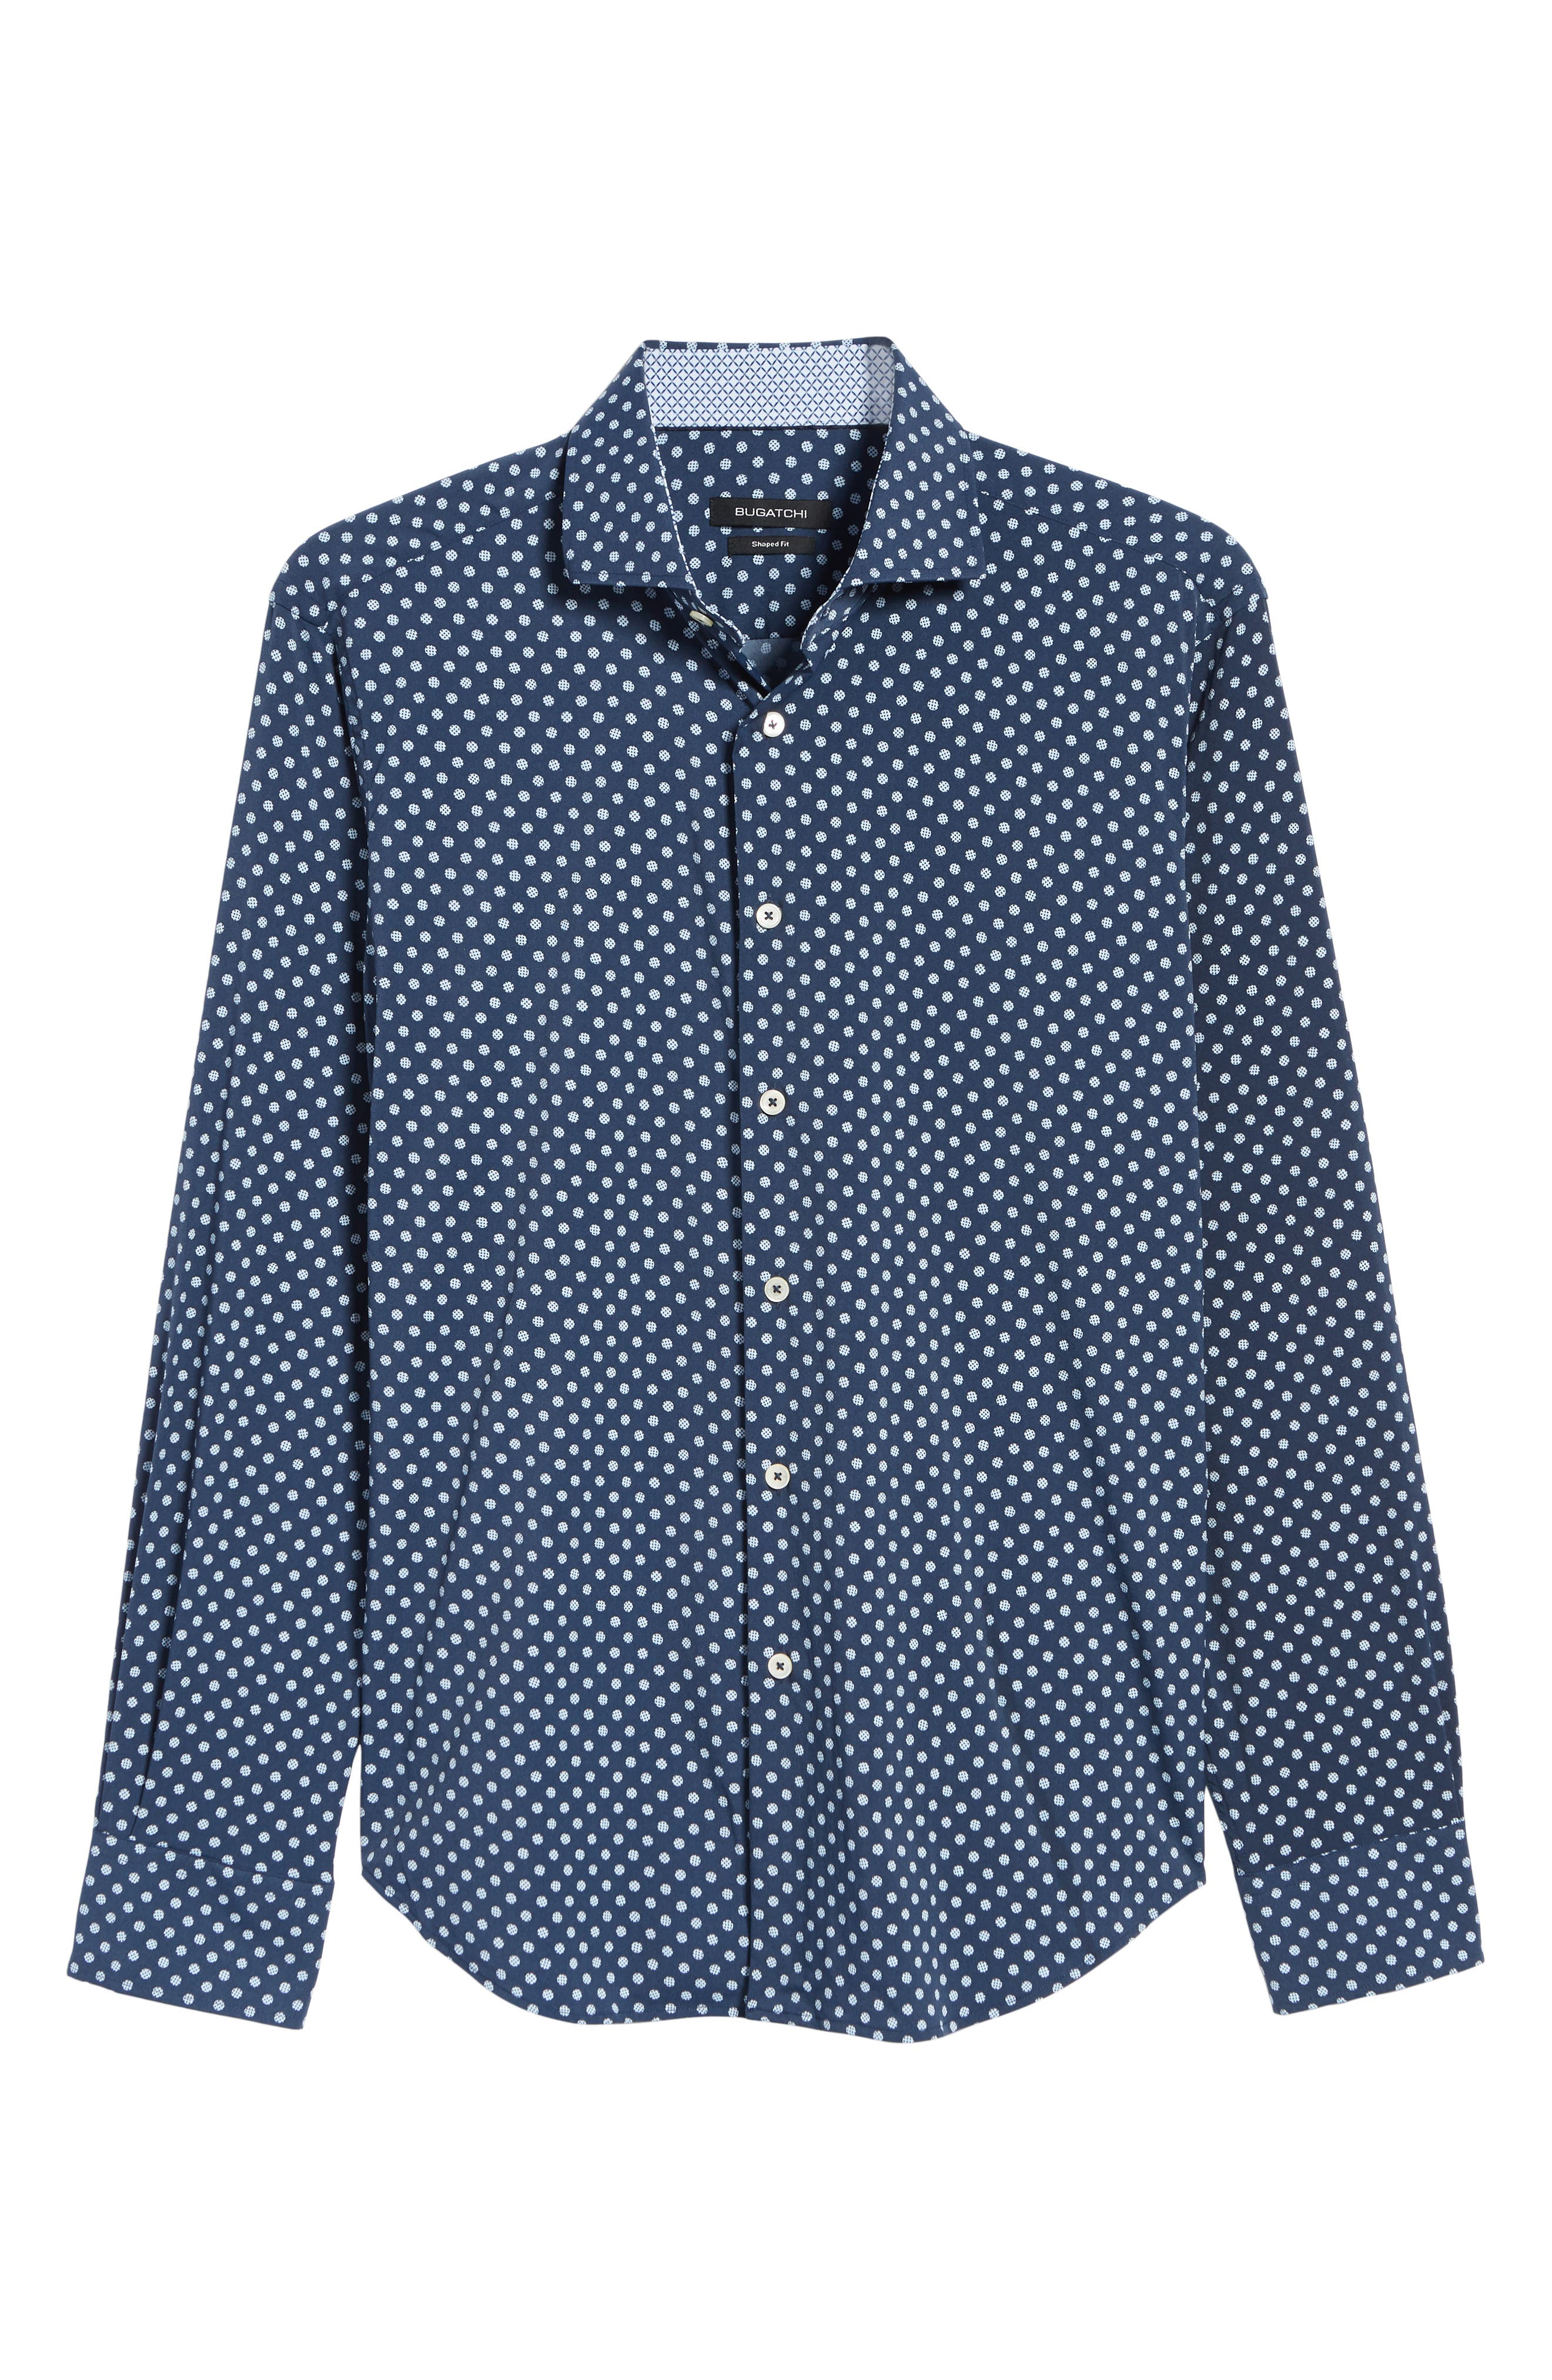 Shaped Fit Print Sport Shirt,                             Alternate thumbnail 5, color,                             NAVY